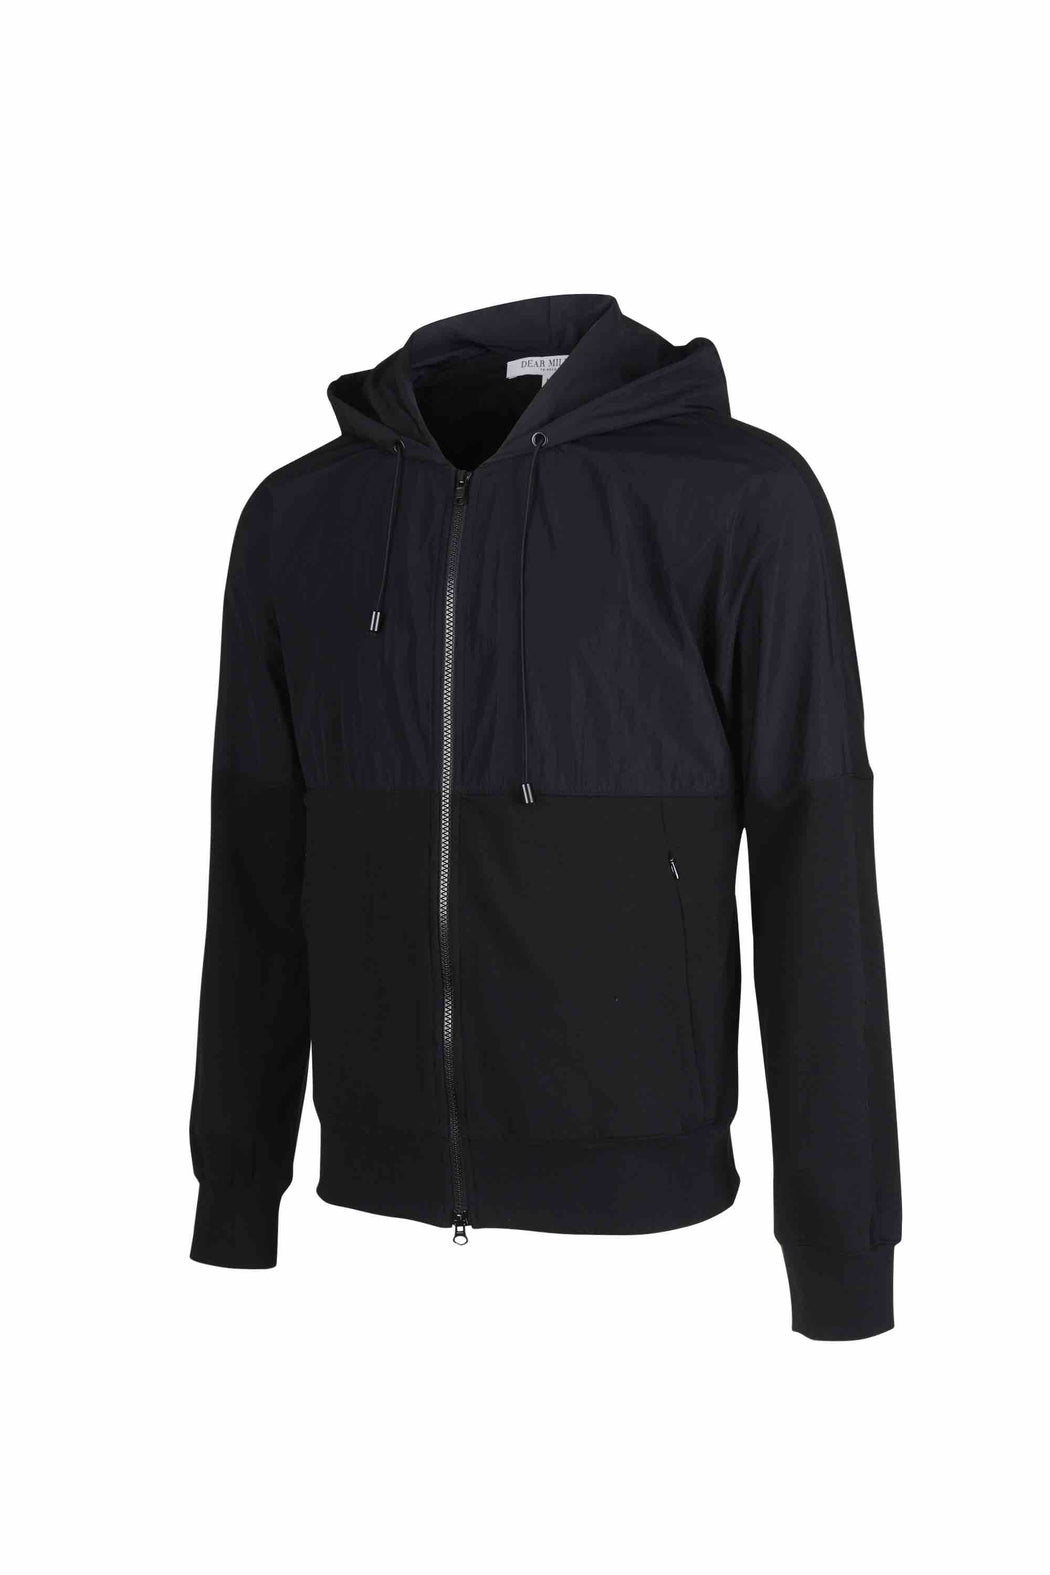 Side view of Men Nylon Hoodie Zip-Up, made with Organic Cotton in Black